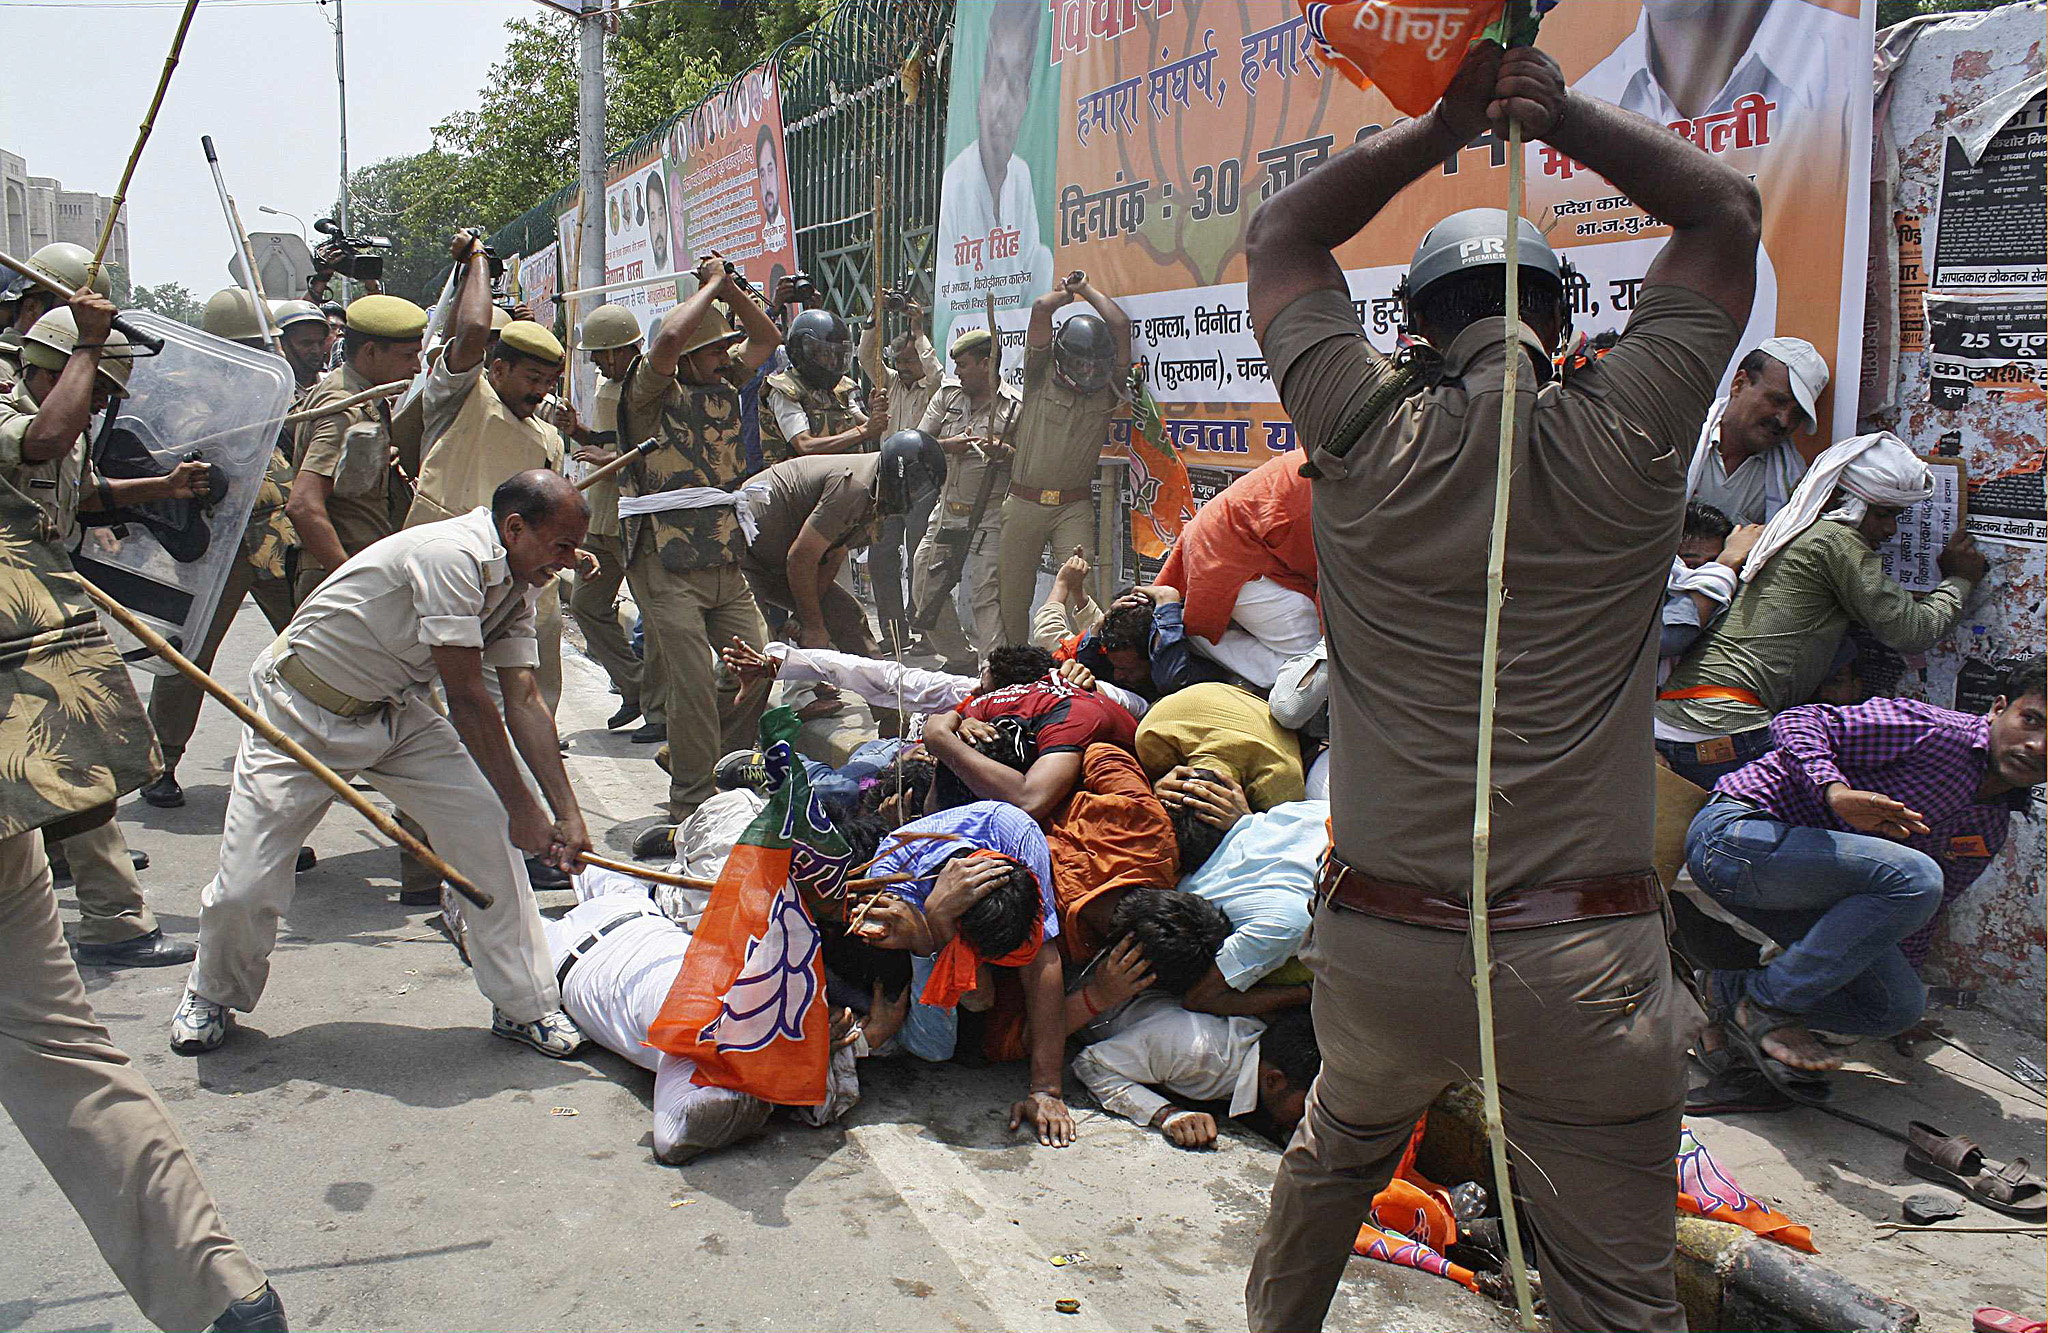 "ATTENTION EDITORS - REUTERS PICTURE HIGHLIGHT TRANSMITTED BY 1350 GMT ON JUNE 30, 2014  DEL04 Indian policemen use batons to disperse youth wing workers of India's ruling Bharatiya Janata Party (BJP) during a protest outside the state assembly in the northern Indian city of Lucknow. REUTERS/Pawan Kumar   REUTERS NEWS PICTURES HAS NOW MADE IT EASIER TO FIND THE BEST PHOTOS FROM THE MOST IMPORTANT STORIES AND TOP STANDALONES EACH DAY. Search for ""TPX"" in the IPTC Supplemental Category field or ""IMAGES OF THE DAY"" in the Caption field and you will find a selection of 80-100 of our daily Top Pictures.  REUTERS NEWS PICTURES.   TEMPLATE OUT"